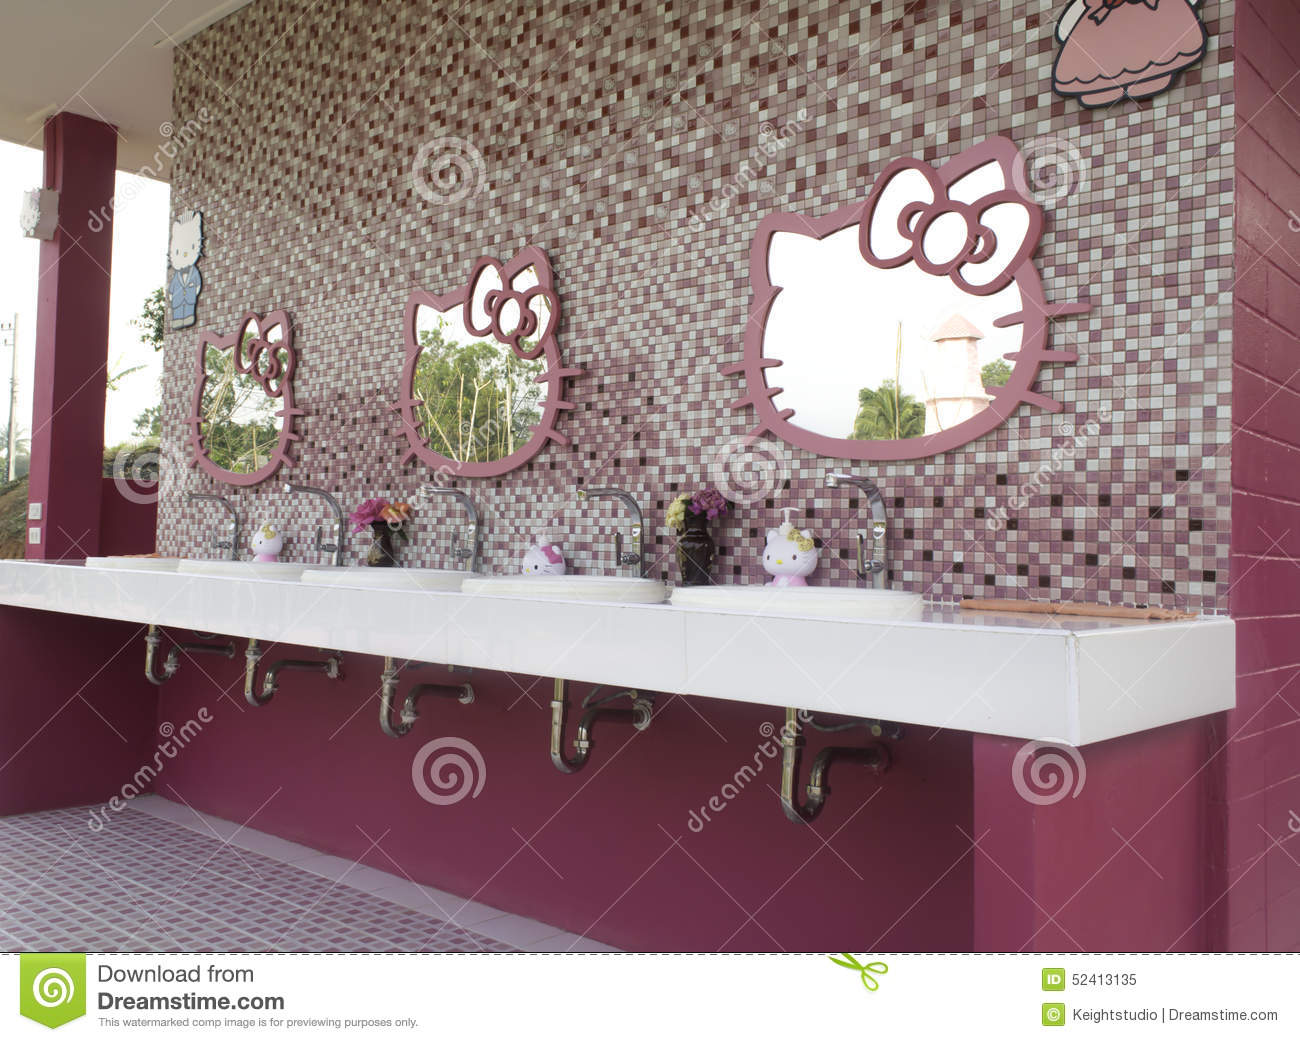 Popular Wallpaper Hello Kitty Shelf - loei-thailand-march-resort-hello-kitty-th-theme-check-area-toilet-paper-52413135  You Should Have_676582.jpg